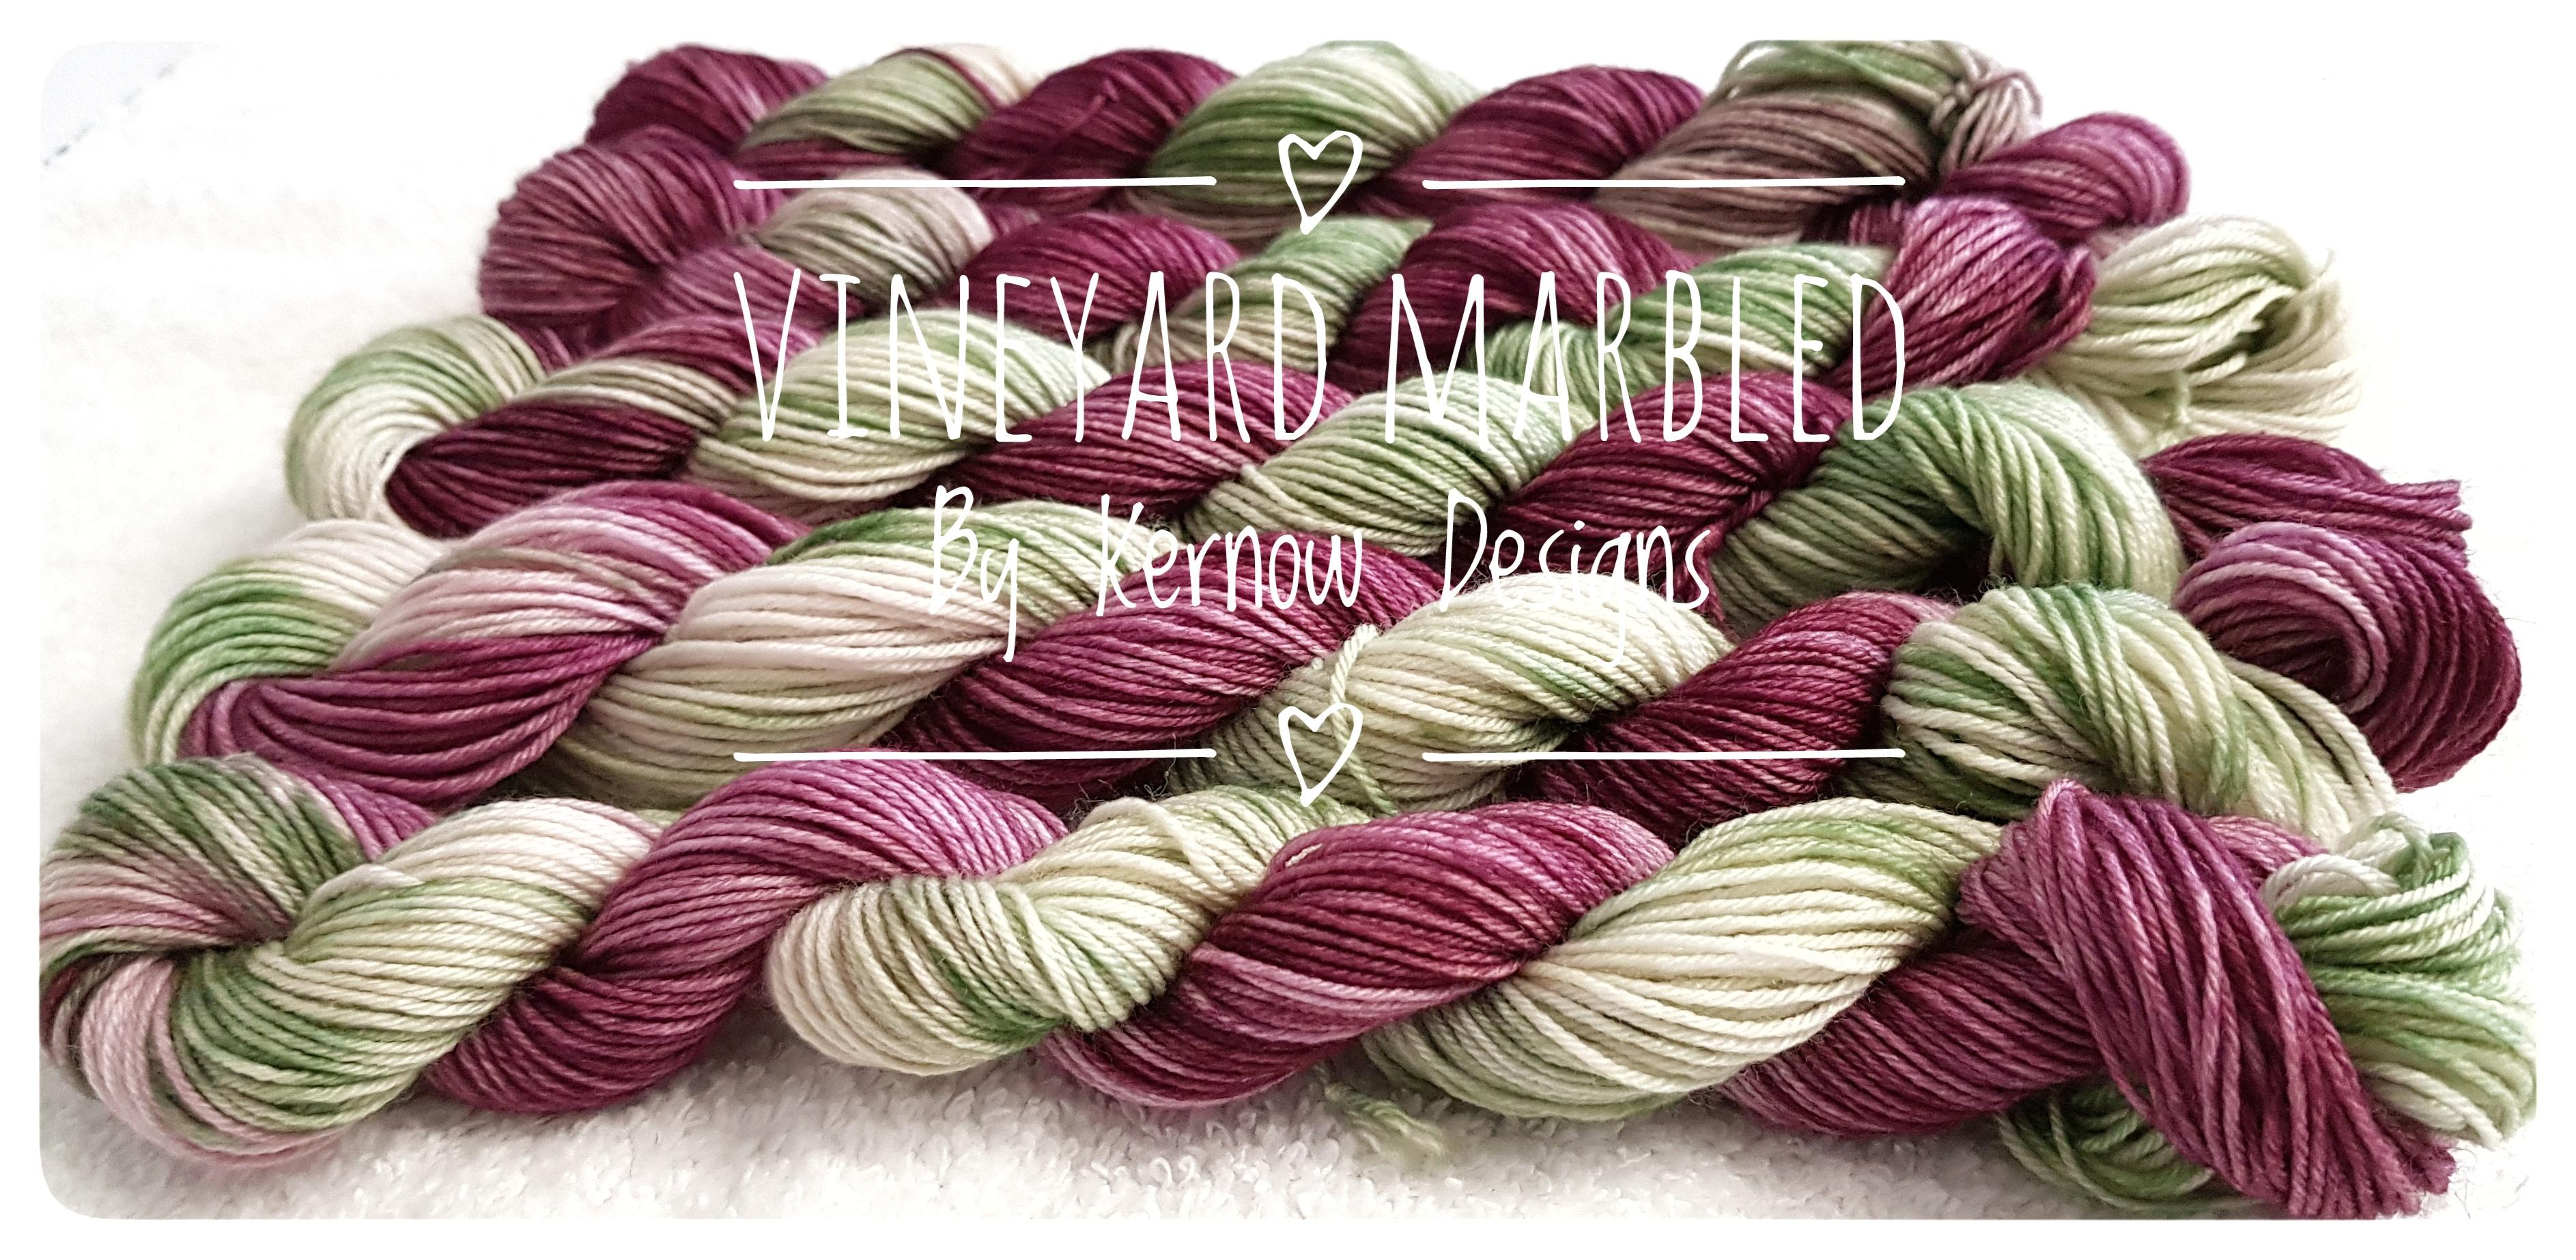 Vineyard Hand Dyed Yarn.